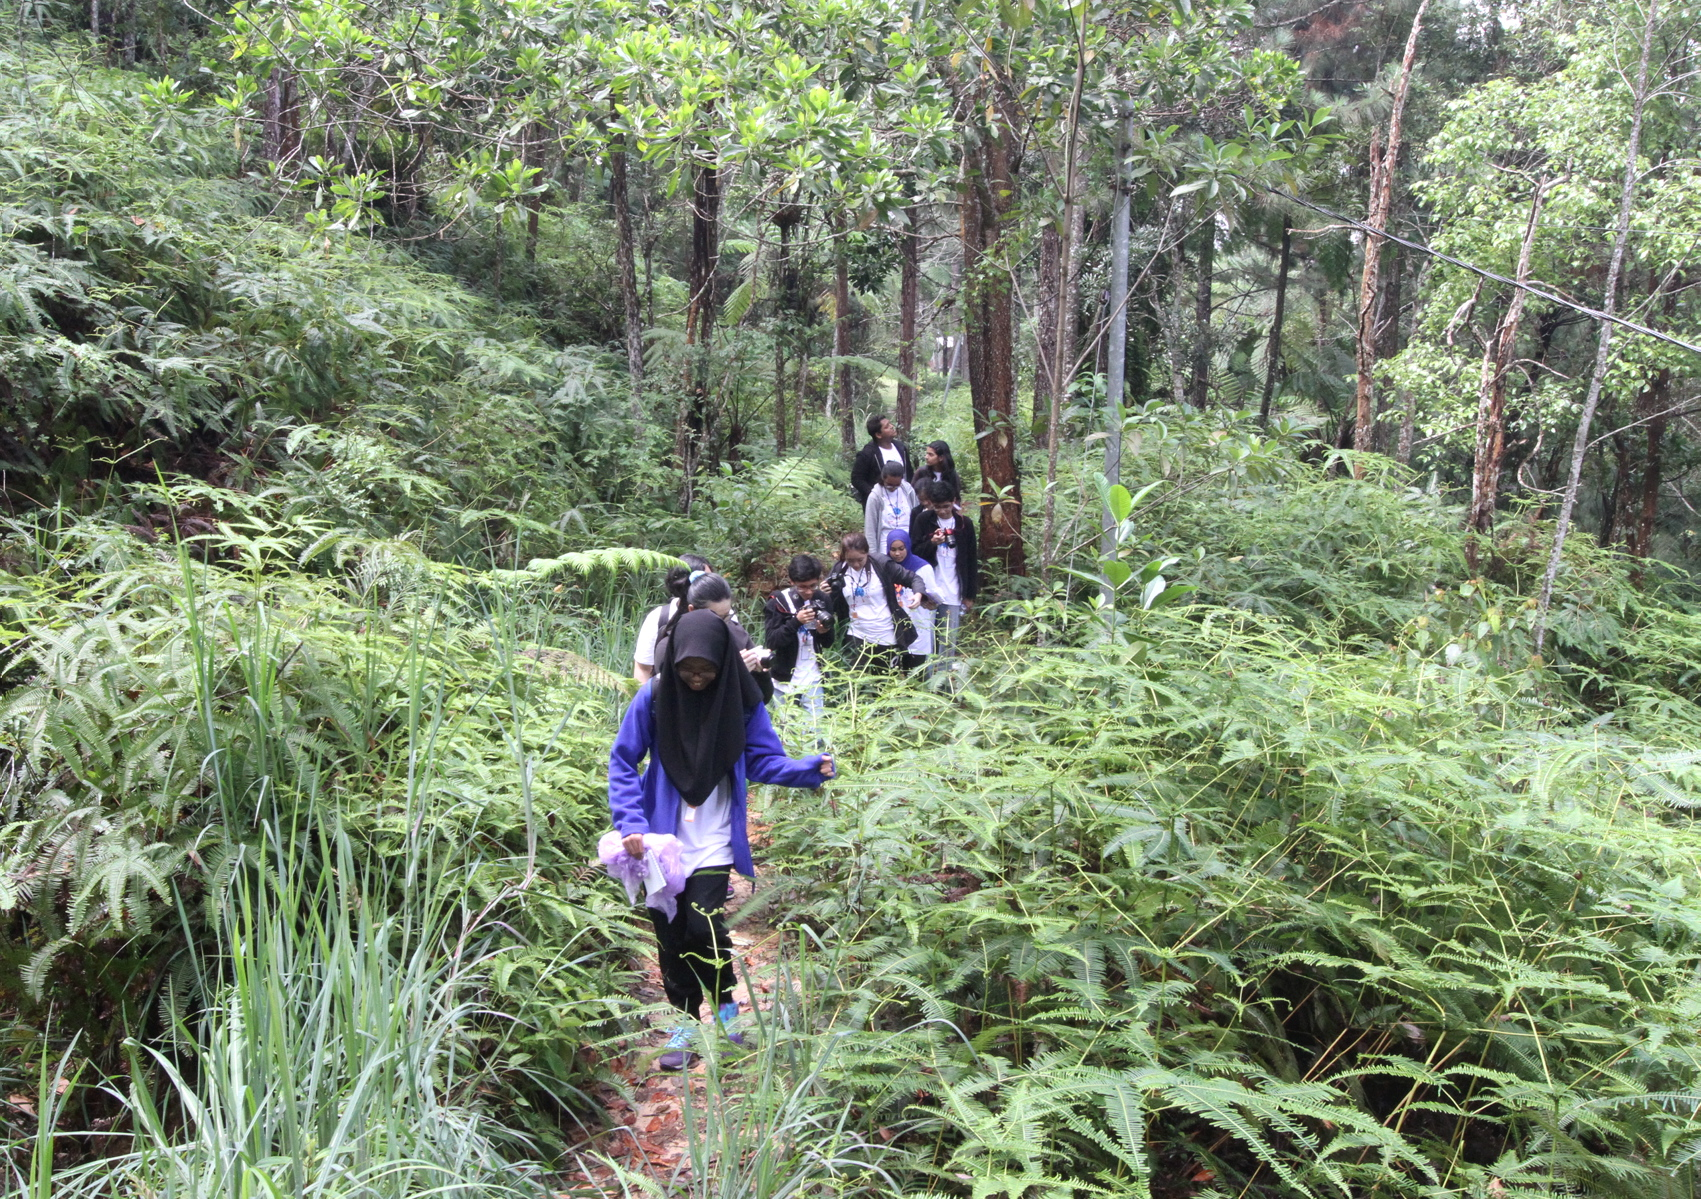 We like to take the BRATs out of their comfort zones, so we took them on a quest to find pitcher plants and gibbons in Genting's mobile tech-enabled forest.